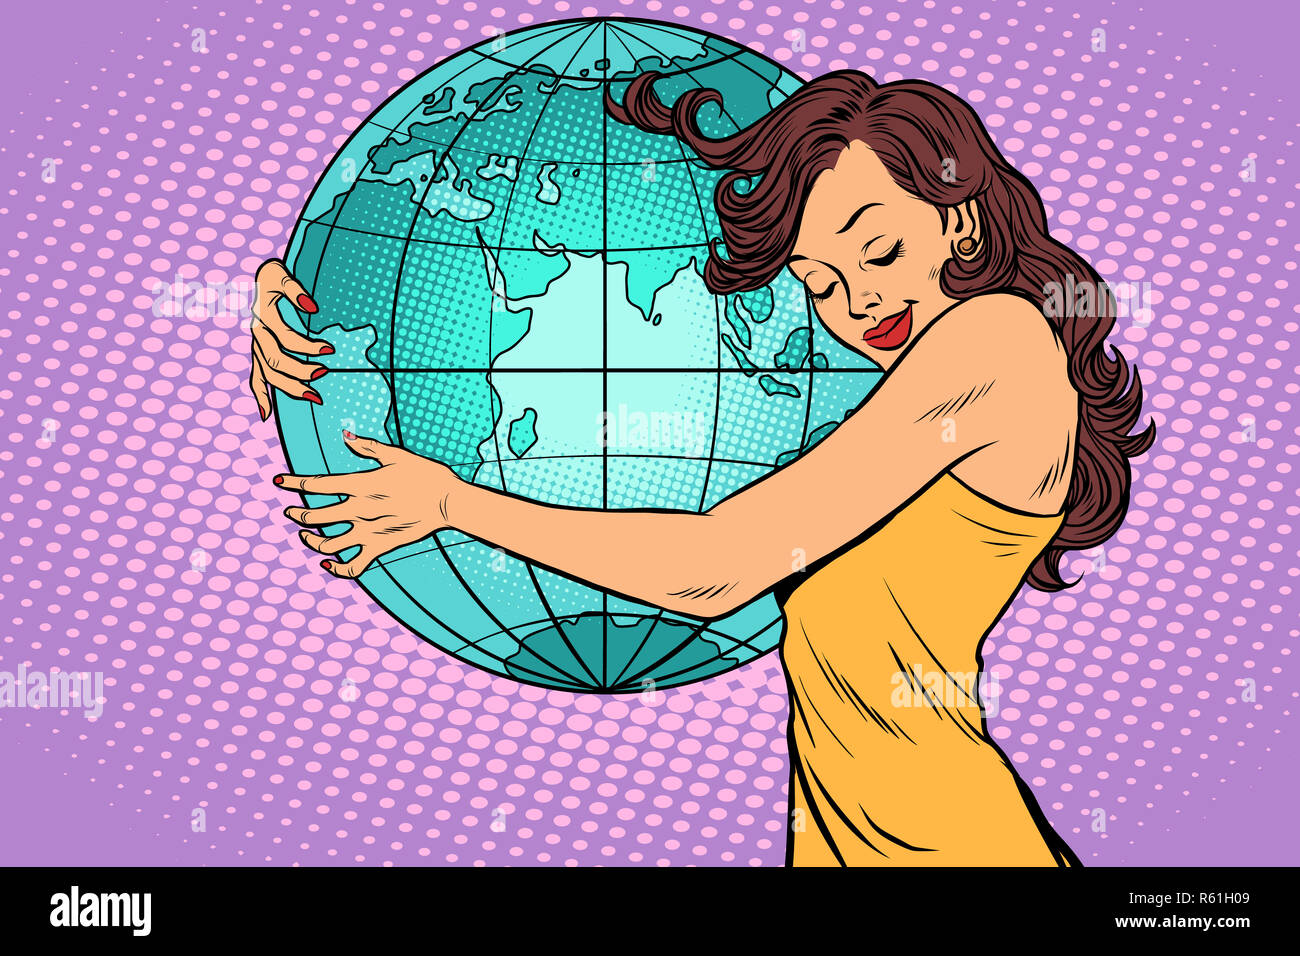 woman hugging the earth continent of Africa and Eurasia - Stock Image